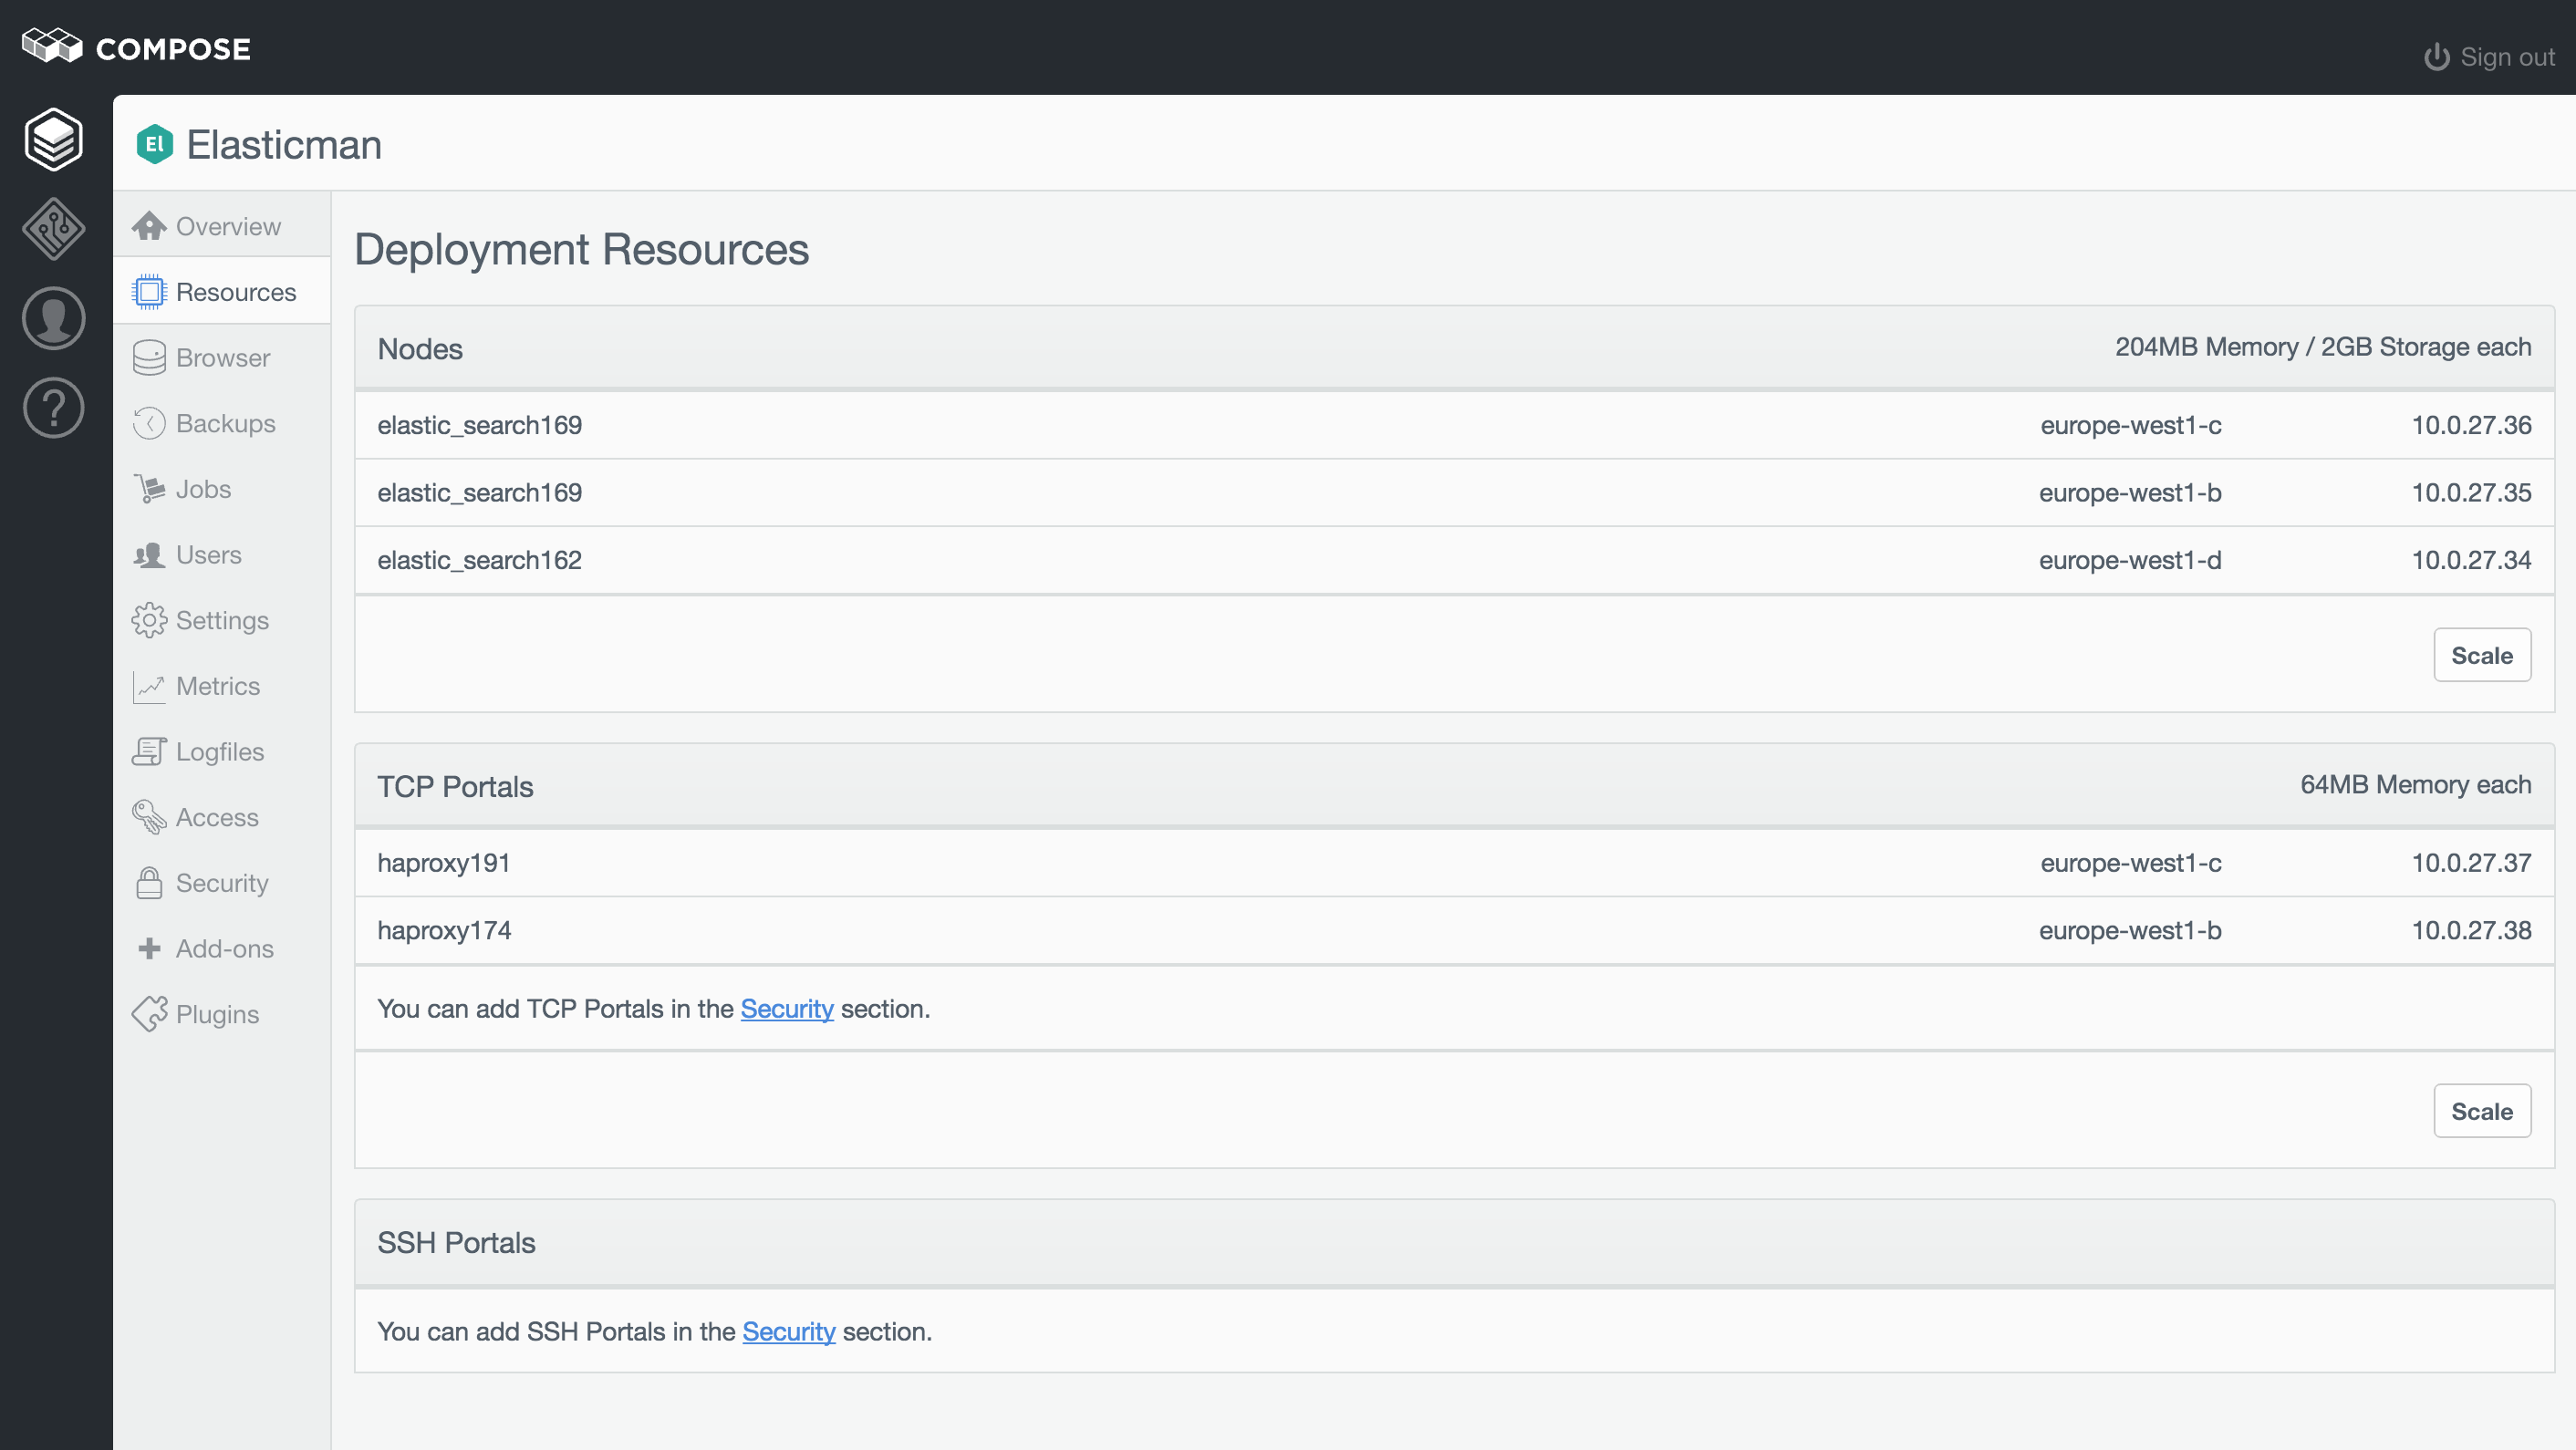 A view of a deployment's resources, specifically Elasticsearch.